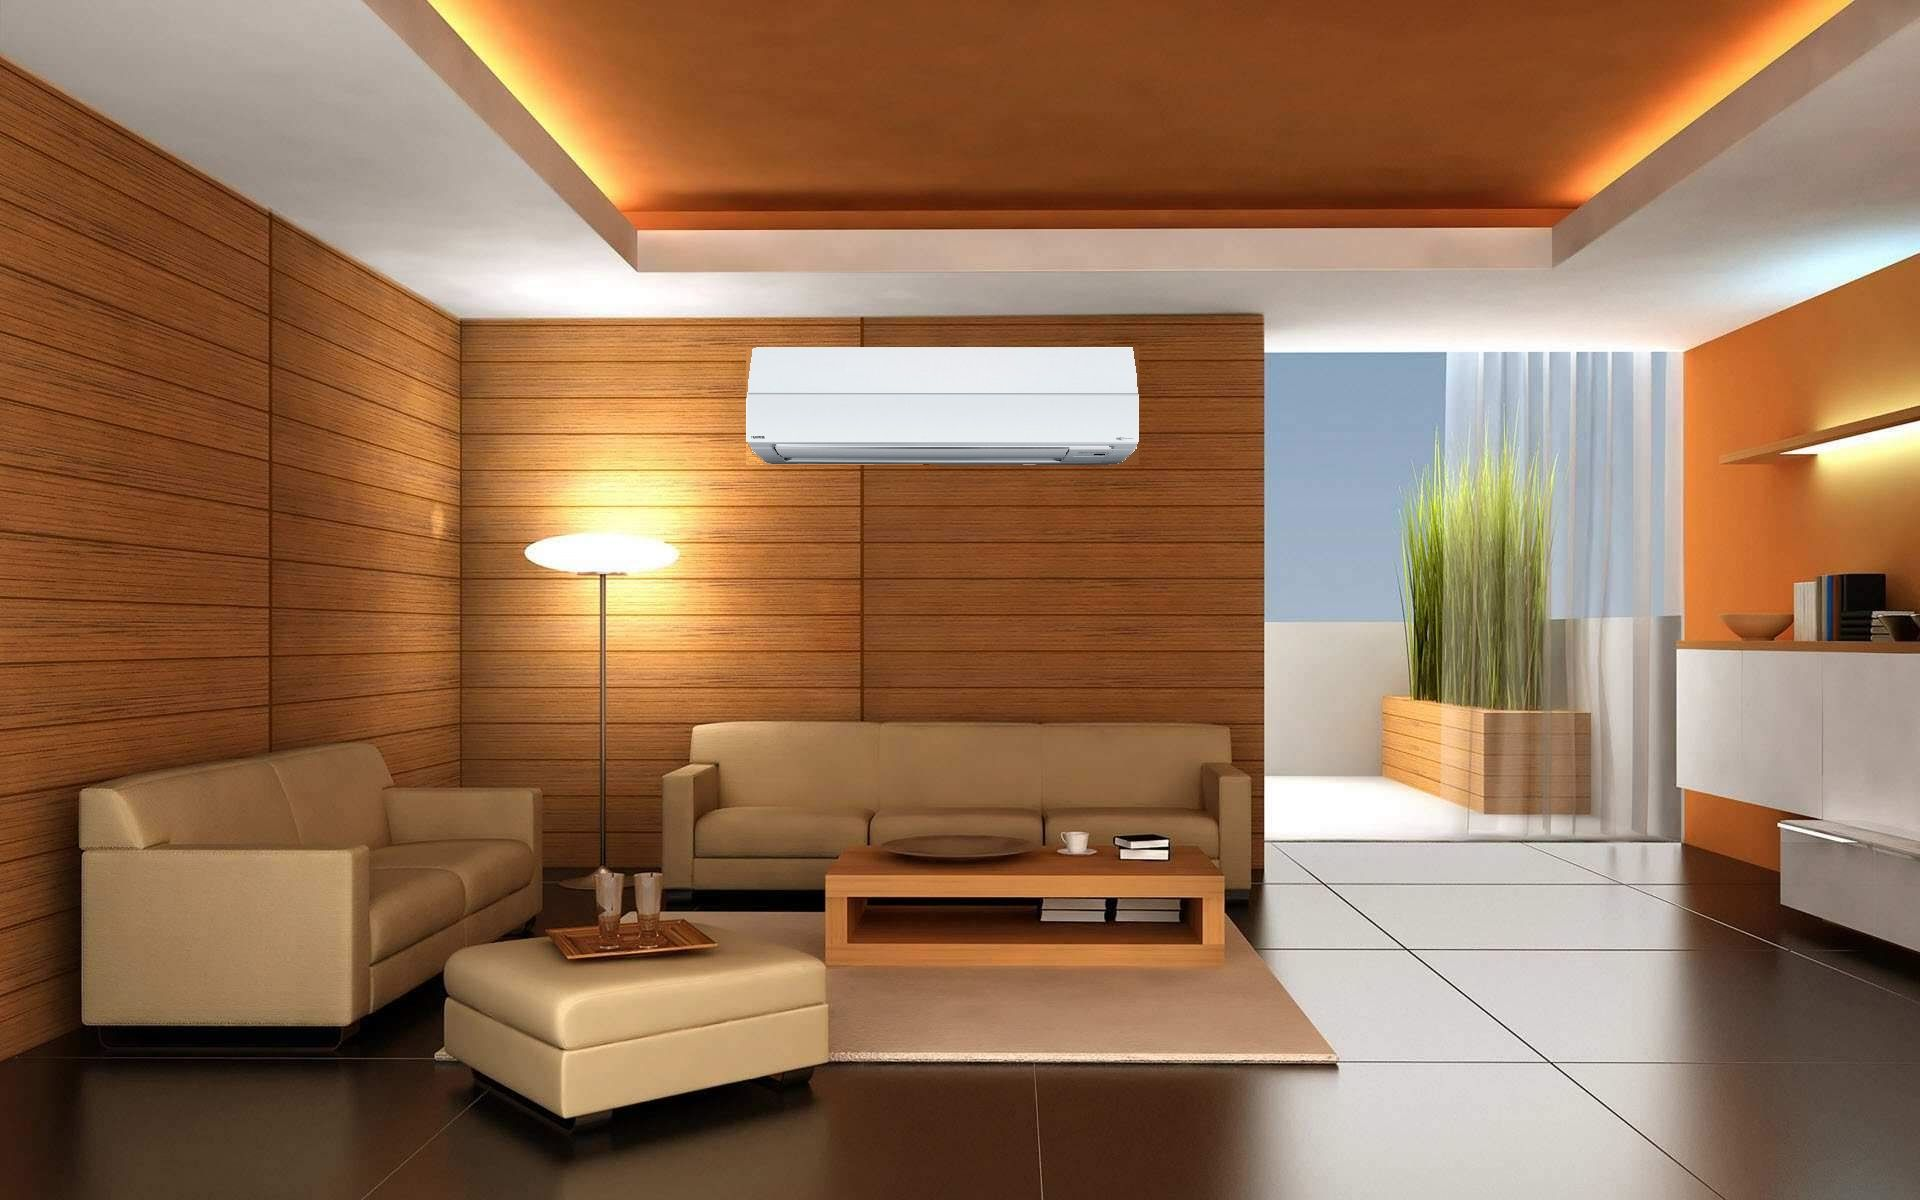 Pop Designs For Living Room Where Can I Find Aircon Promotion In Singapore Aircon Promotion